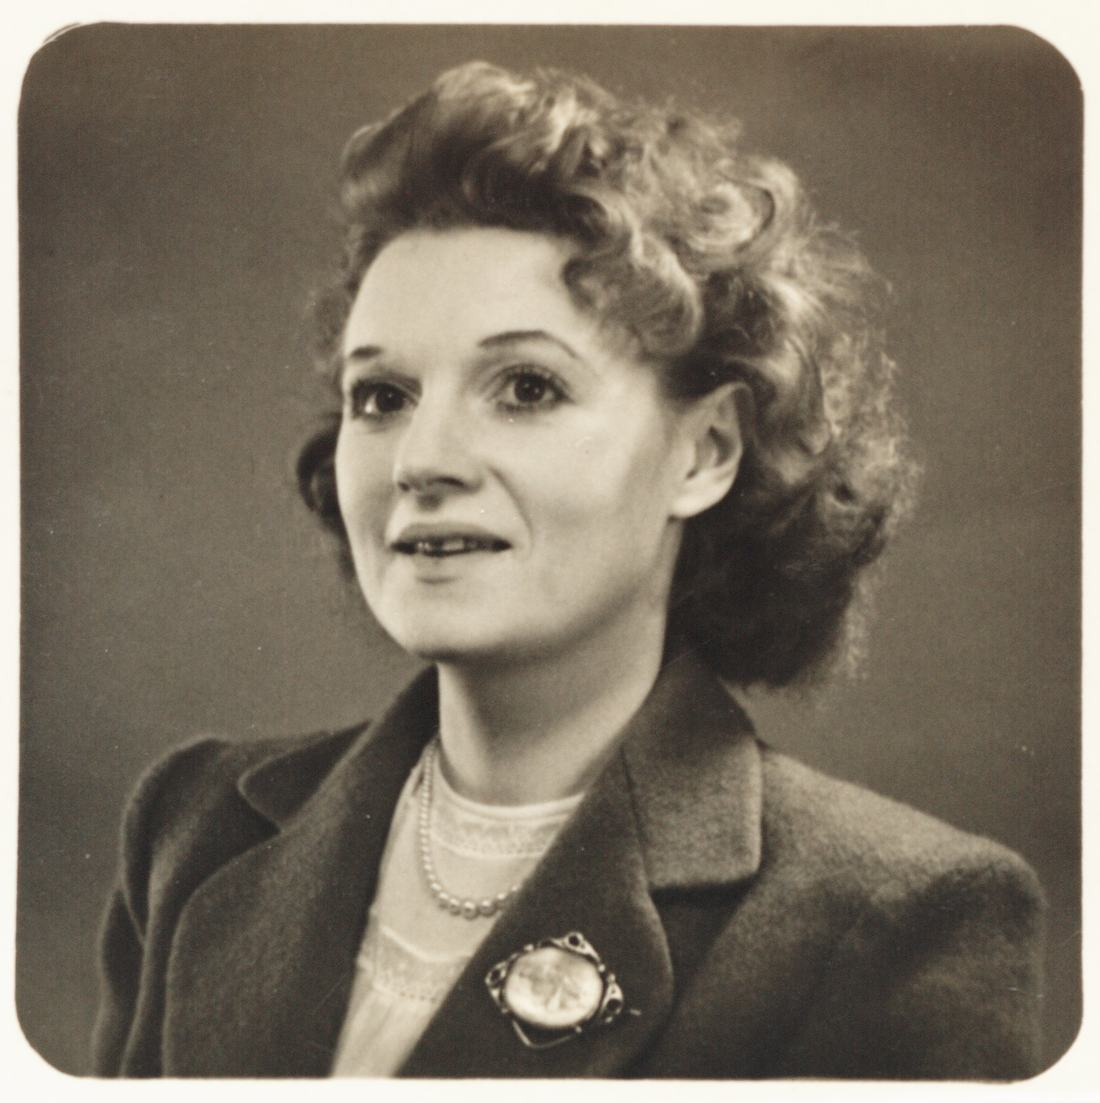 Muriel Spark - passport photo from 1947, courtesy of Muriel Spark 100/National Library of Scotland